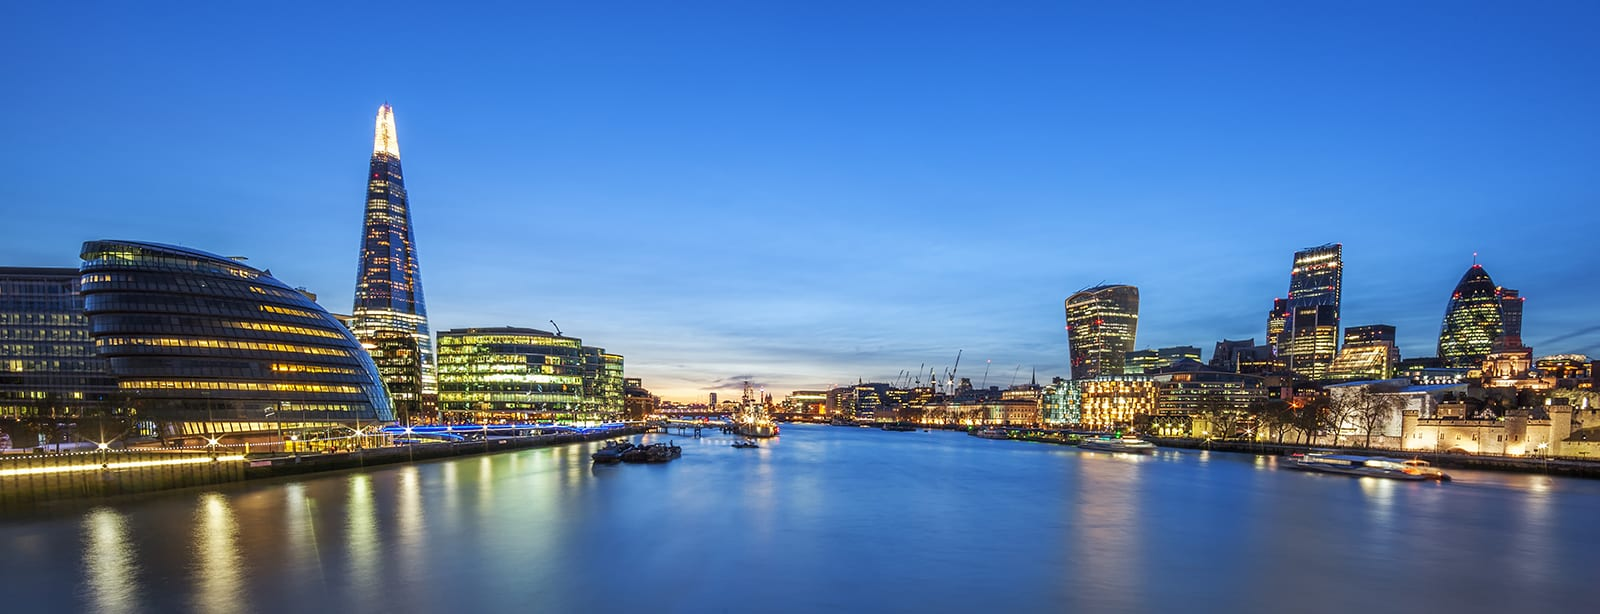 Thrilmere Deacon Property Investment London